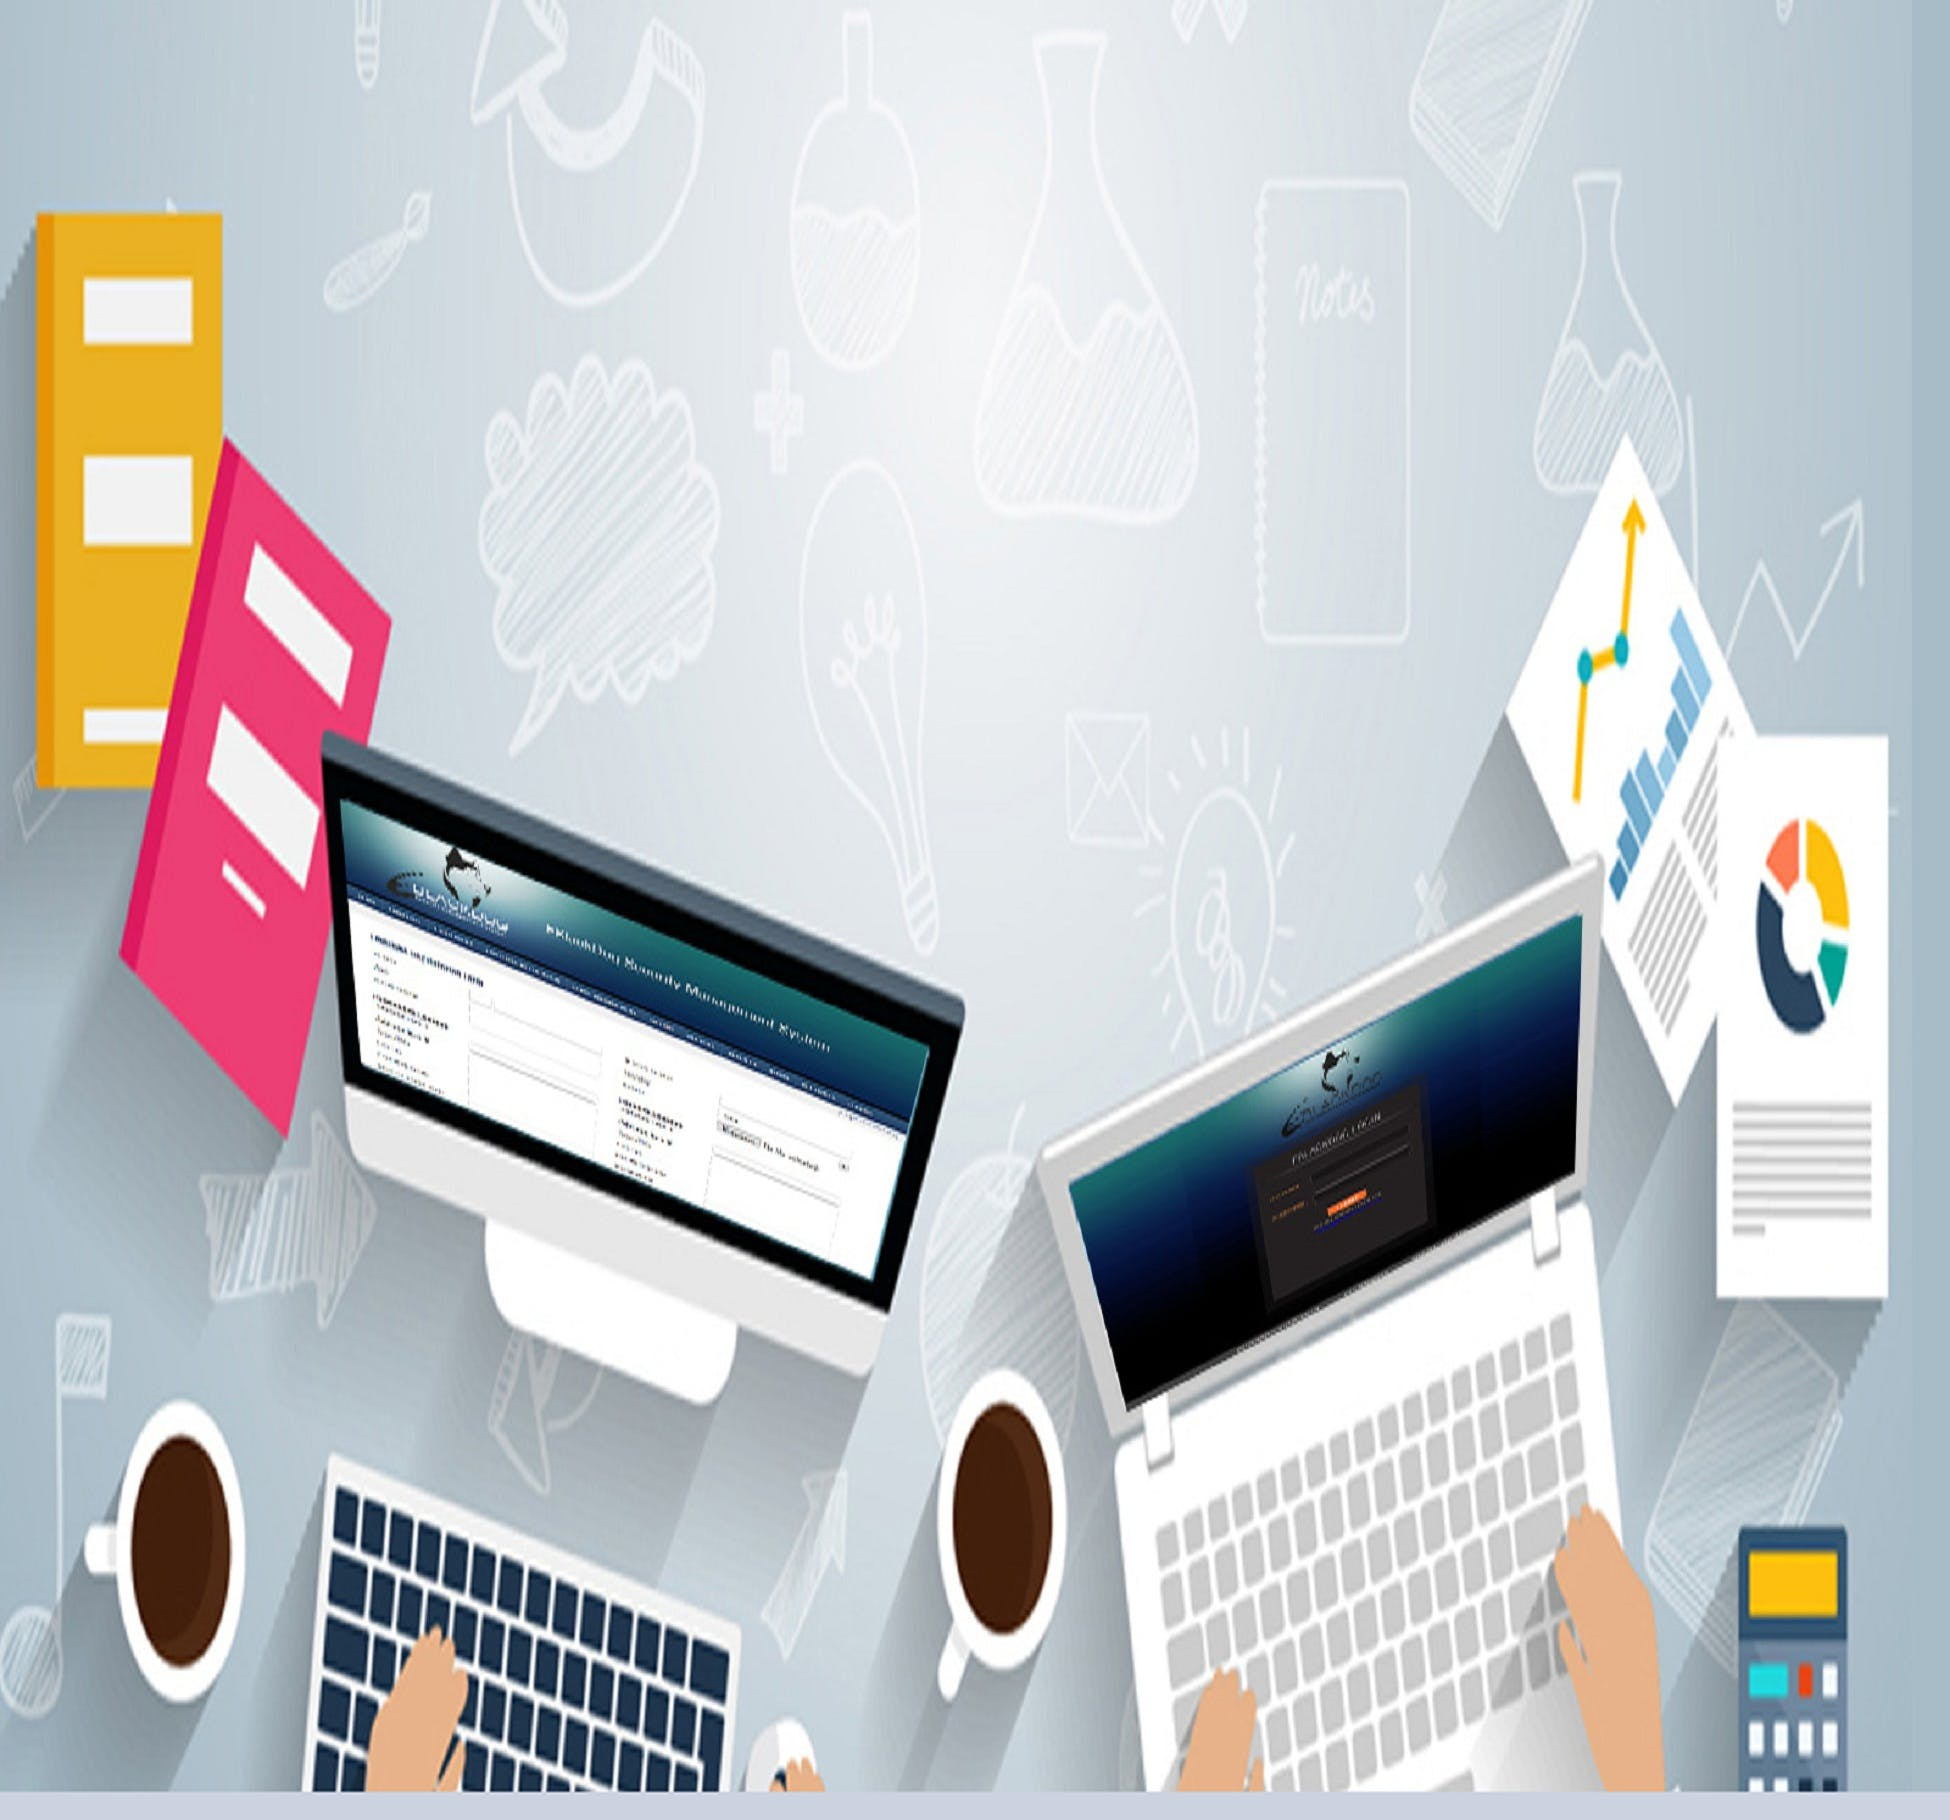 Free stock photo of web designing firm usa